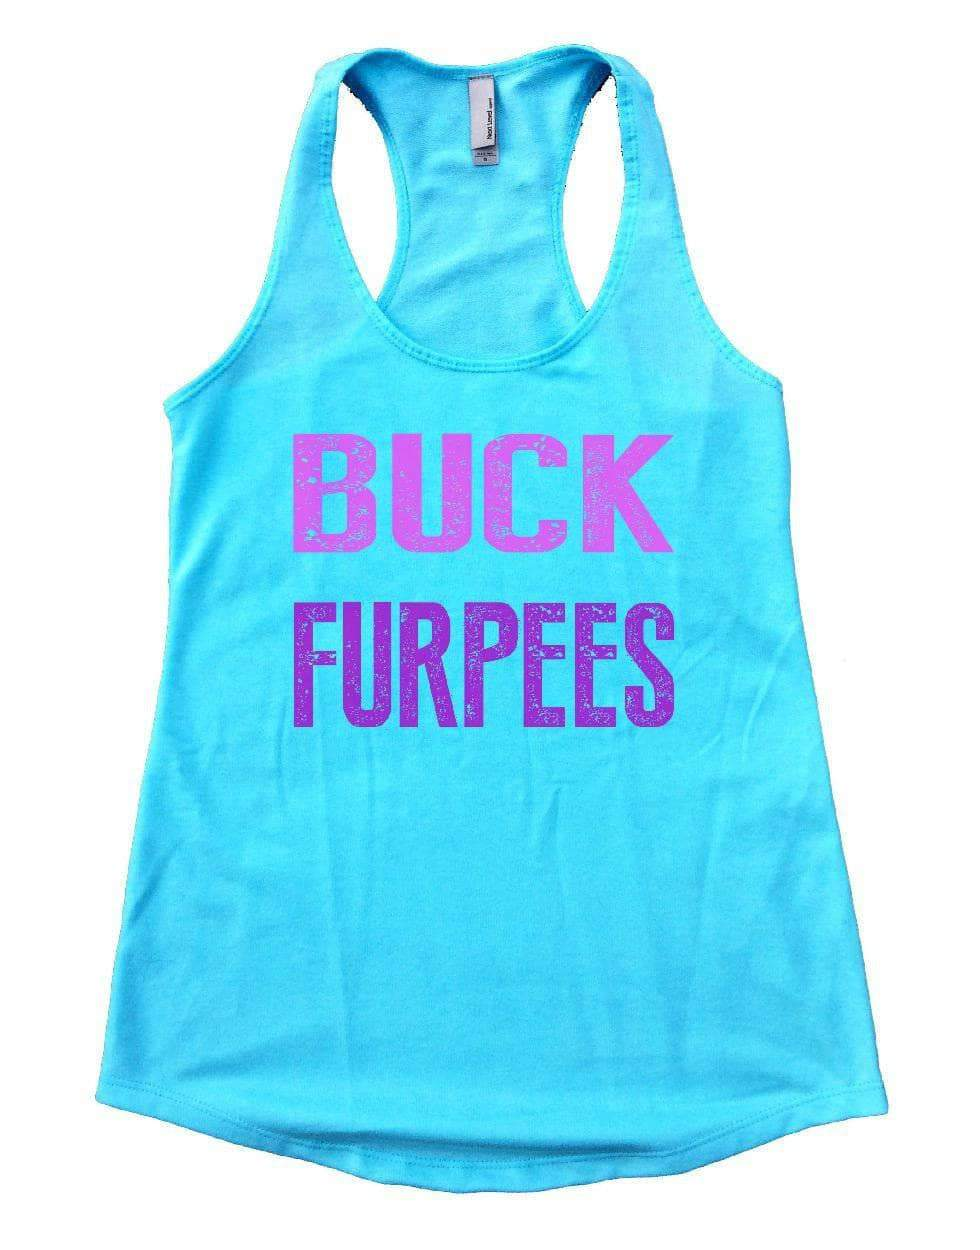 BUCK FURPEES Womens Workout Tank Top Small Womens Tank Tops Cancun Blue